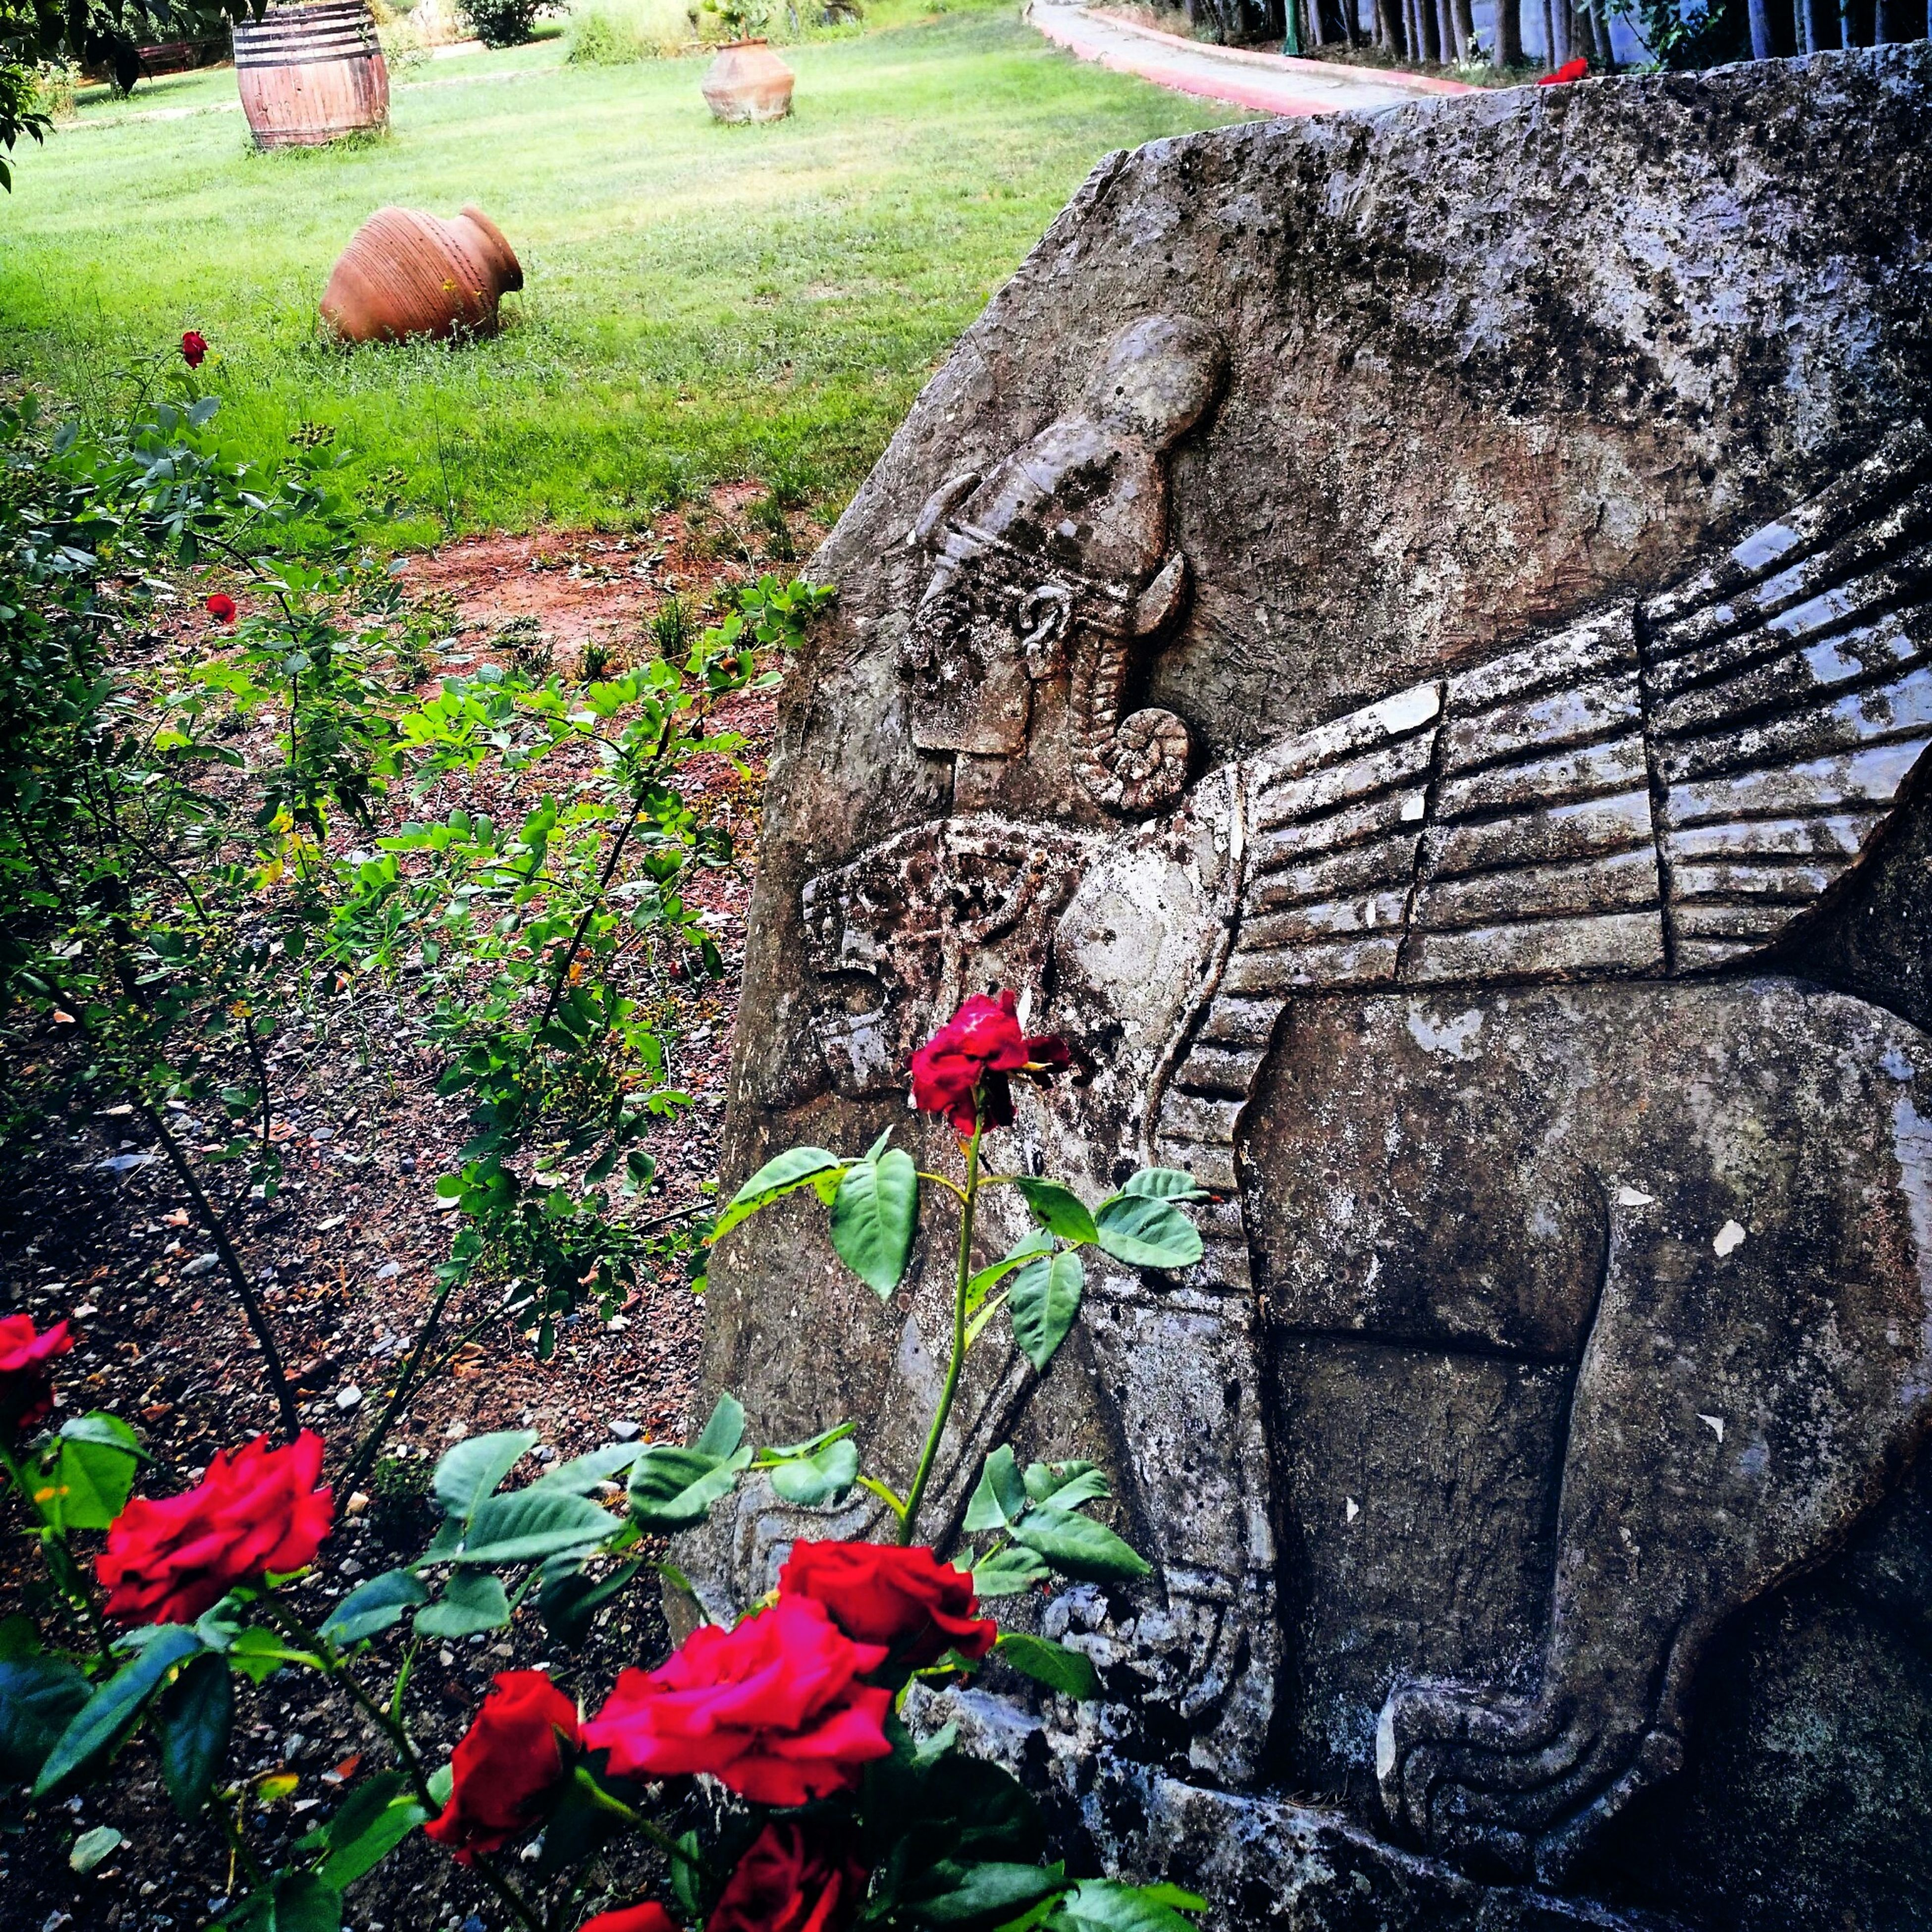 flower, grass, plant, growth, field, nature, park - man made space, freshness, beauty in nature, day, green color, outdoors, fragility, sunlight, formal garden, blooming, rock - object, petal, high angle view, tranquility